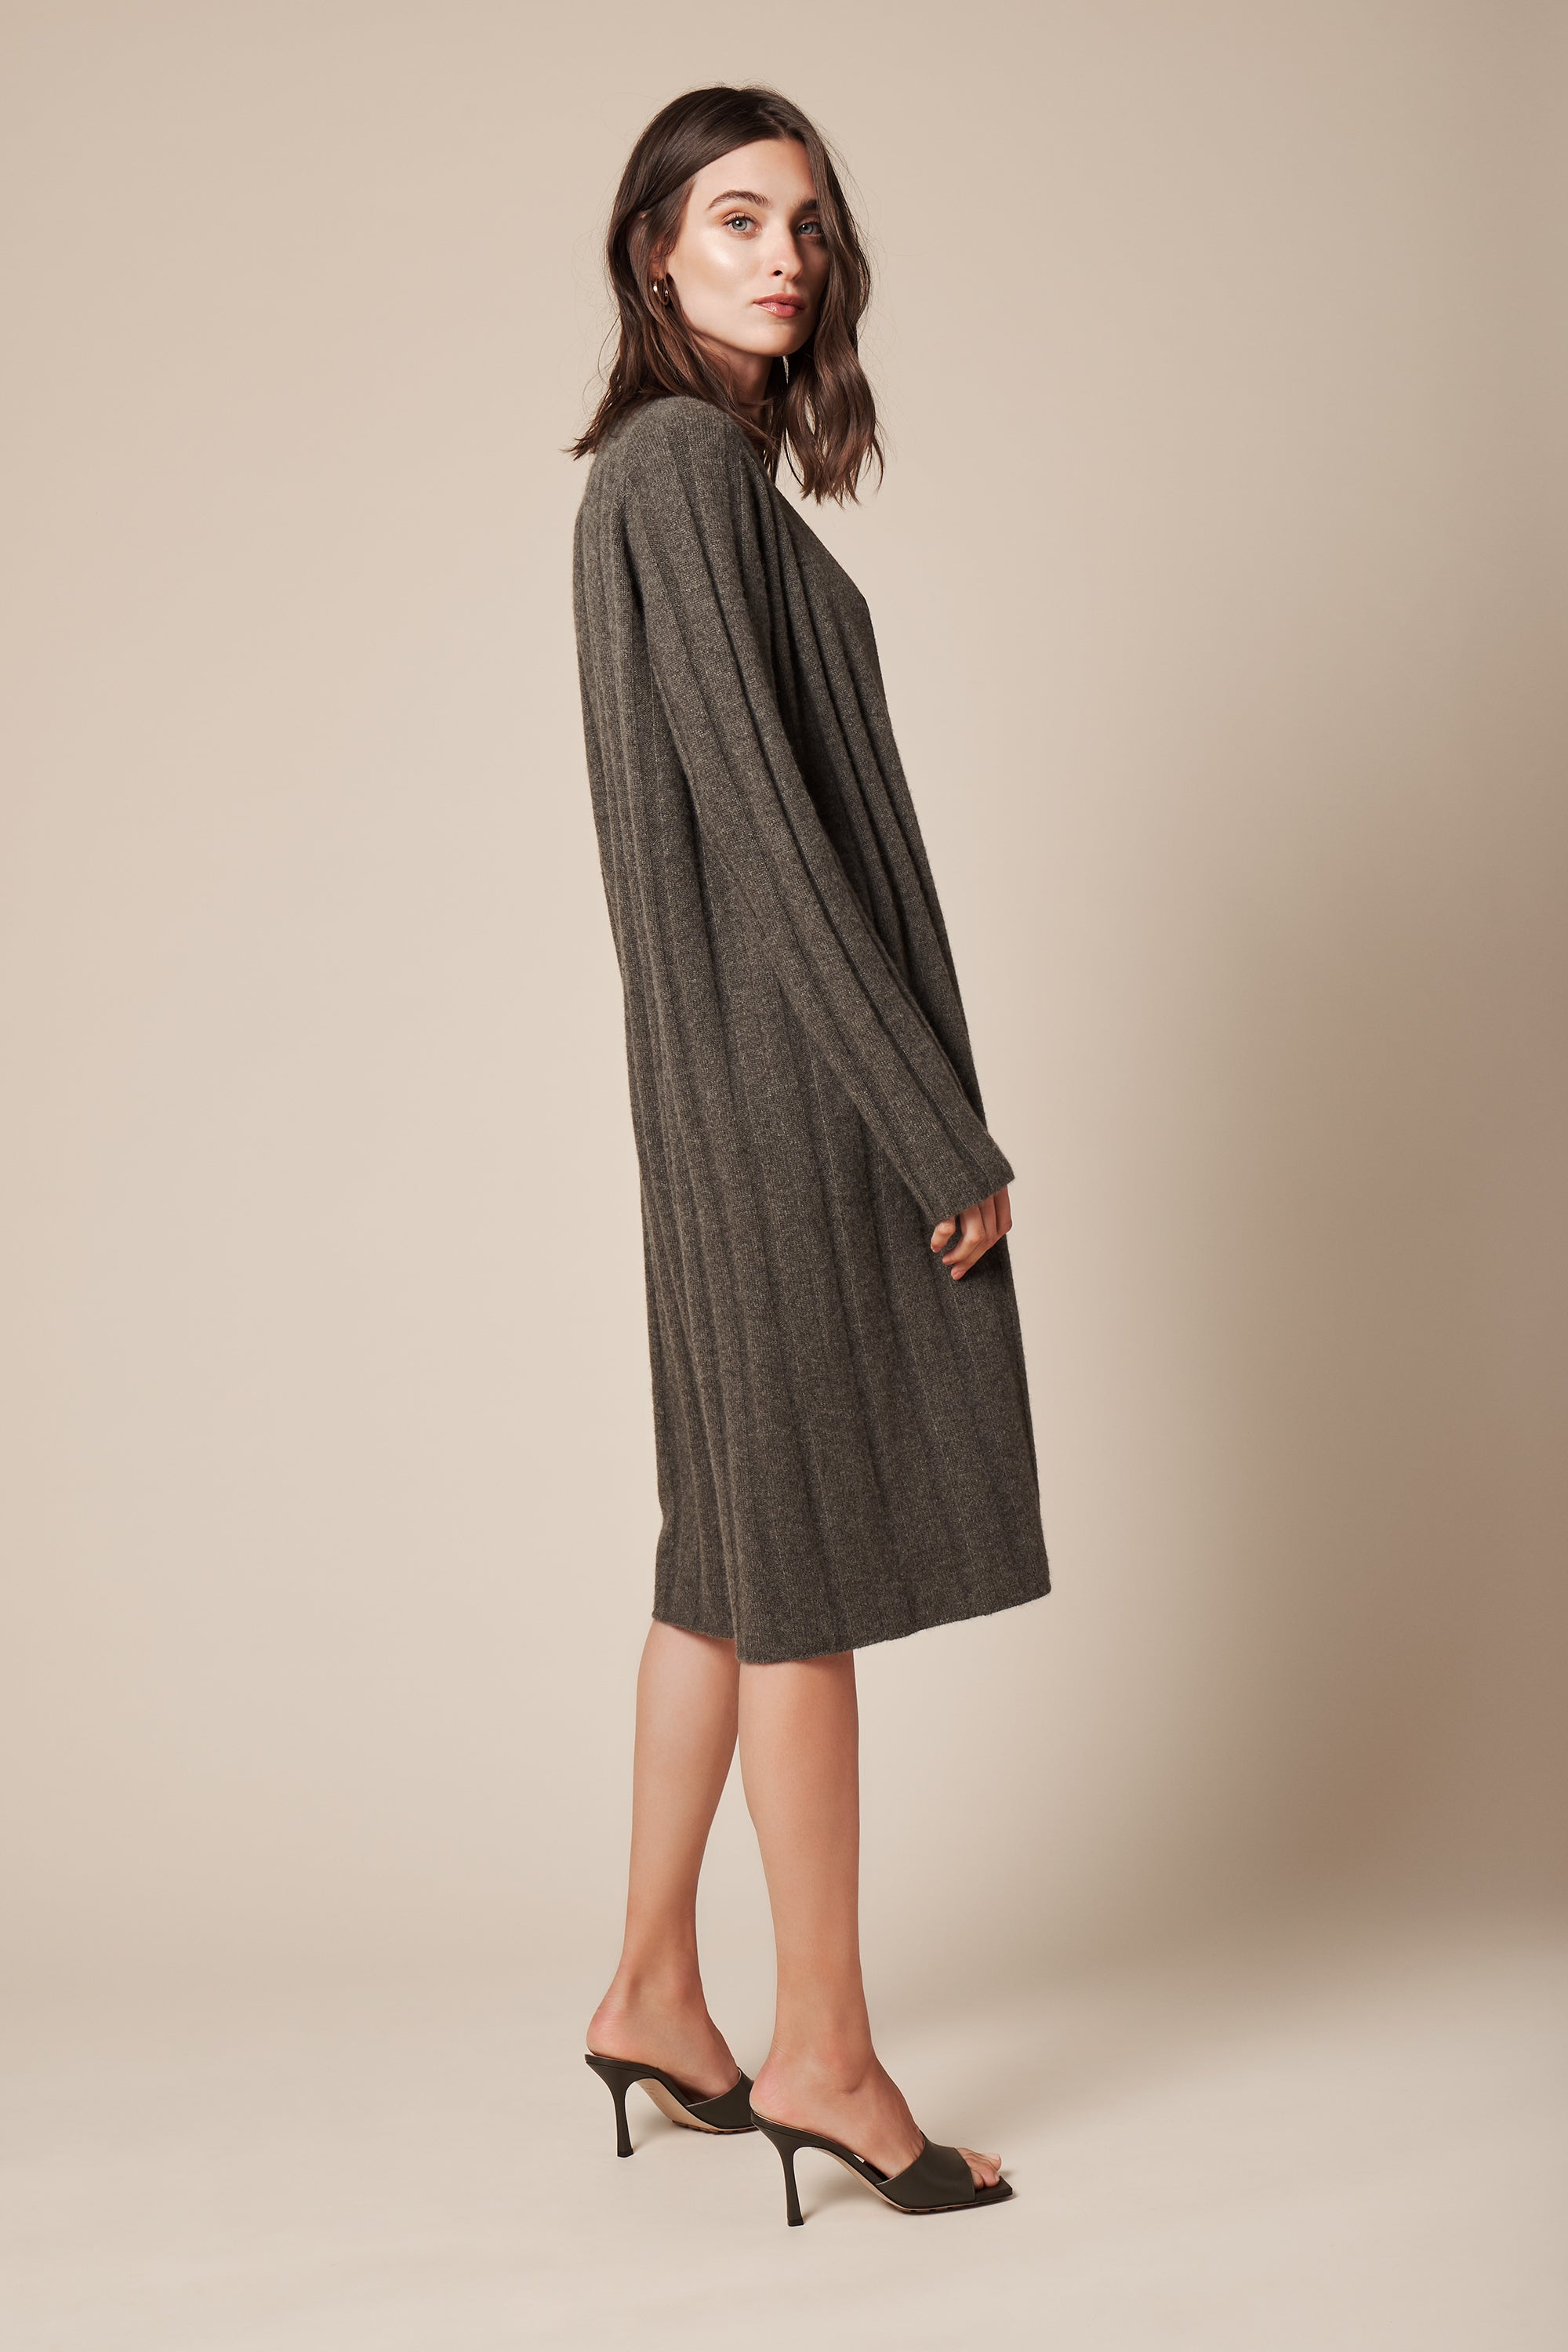 CORY CASHMERE COAT | OLIVE -FINAL SALE